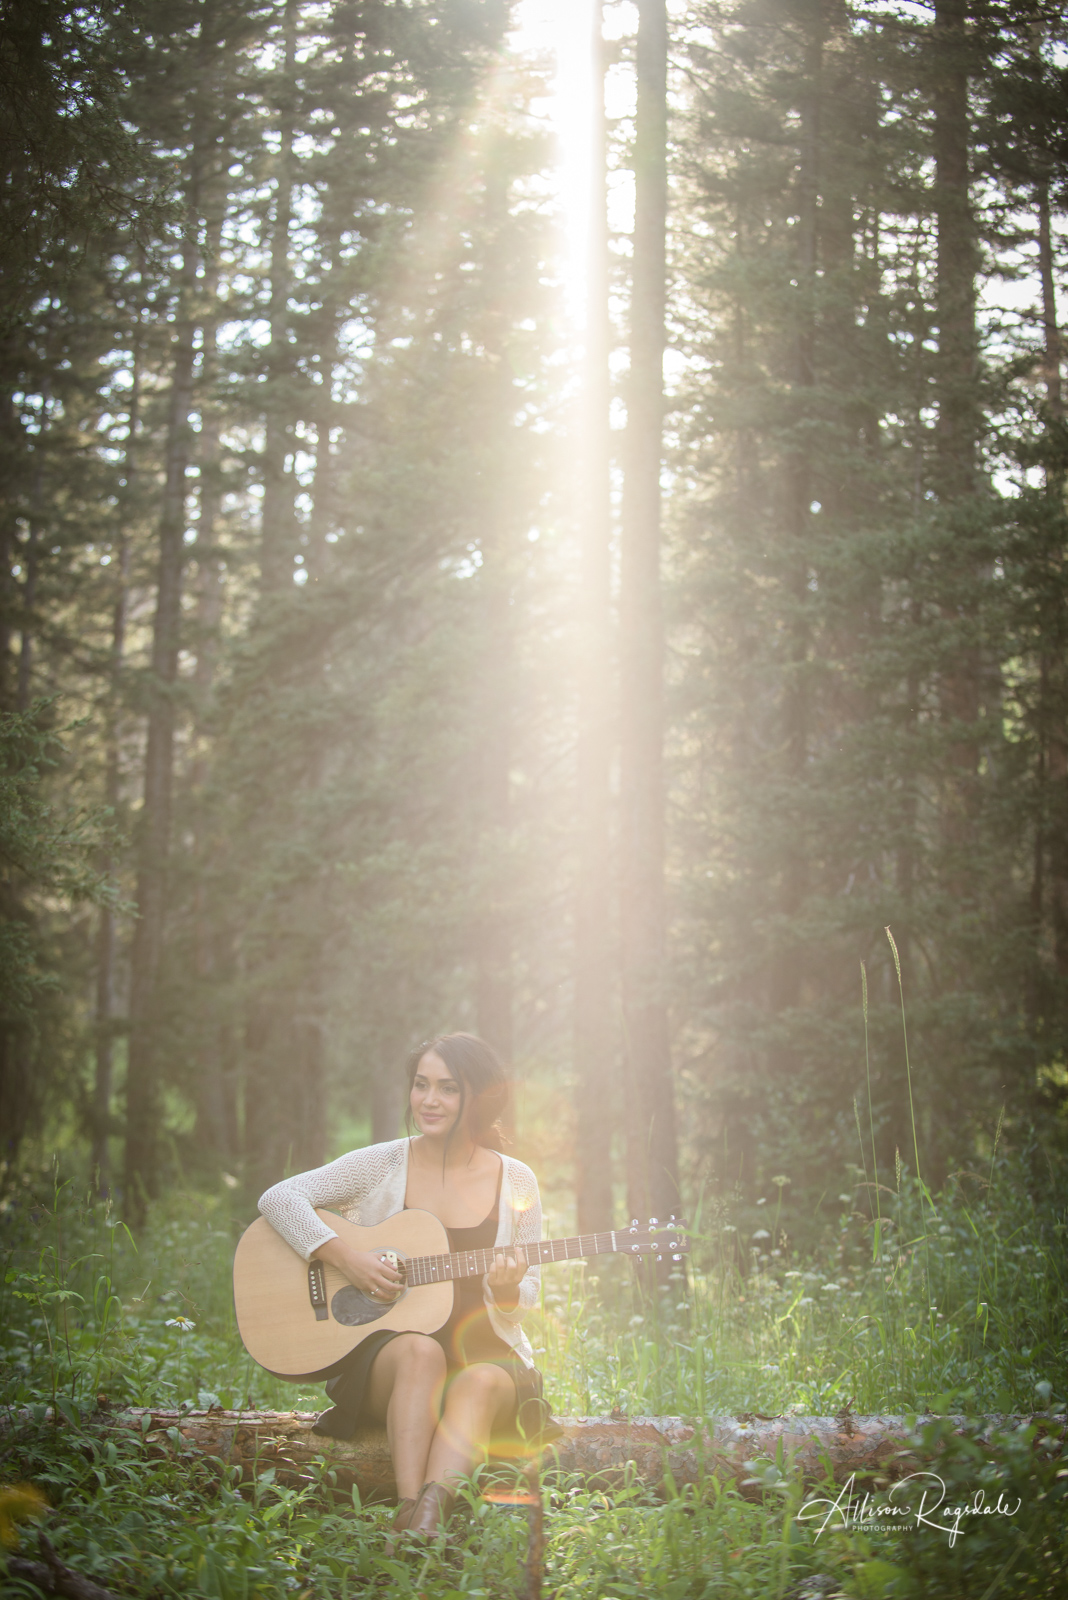 Gorgeous senior pictures with guitar